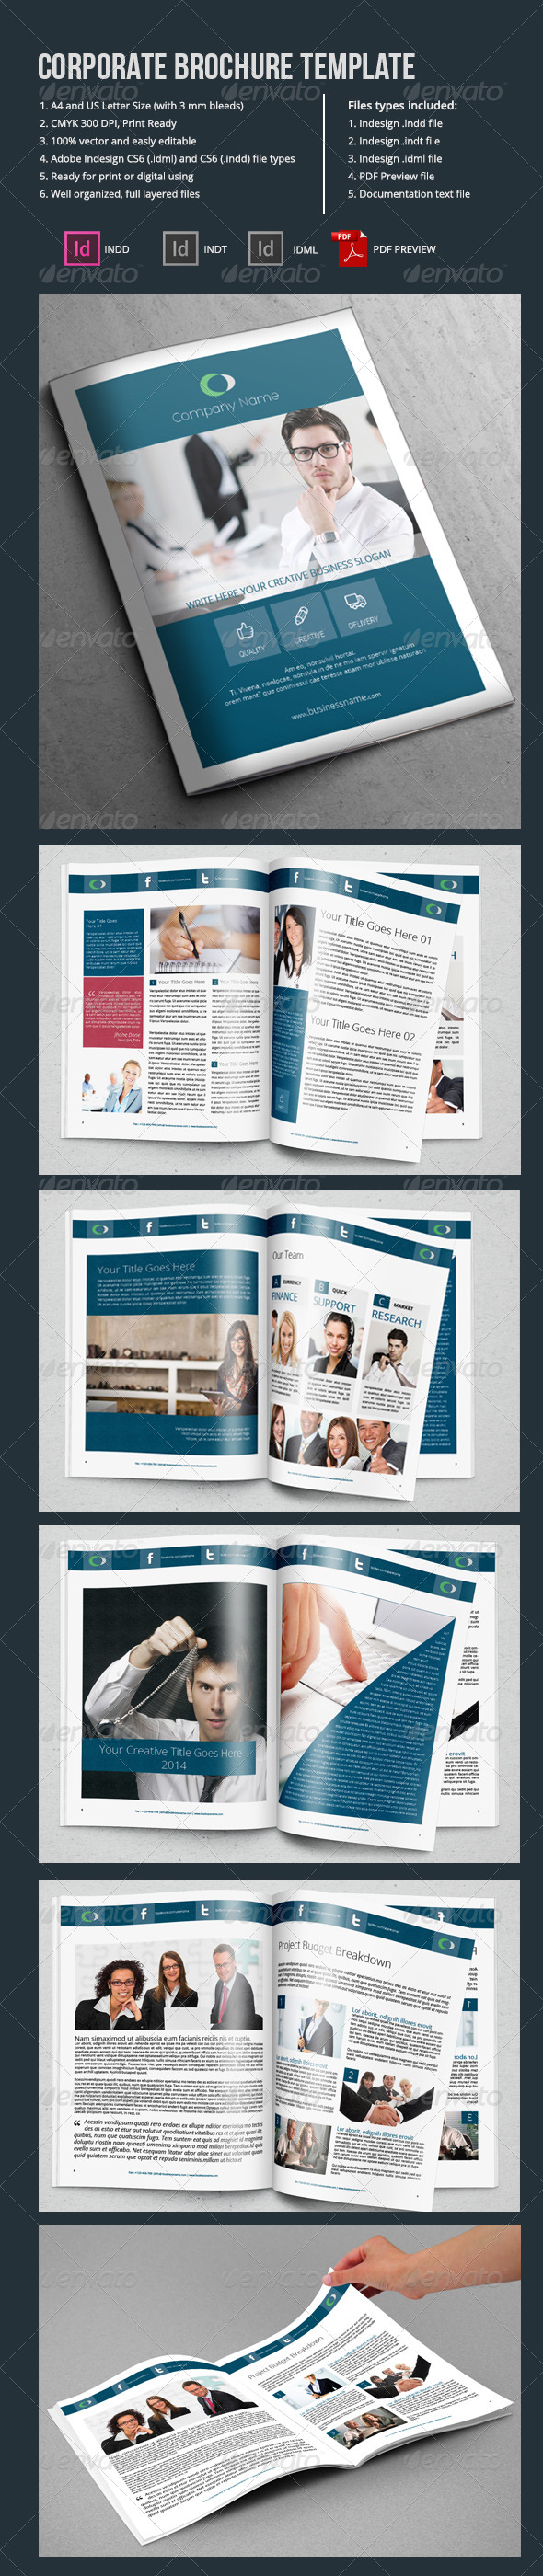 GraphicRiver Corporate Brochure Template-12 Pages 6672507